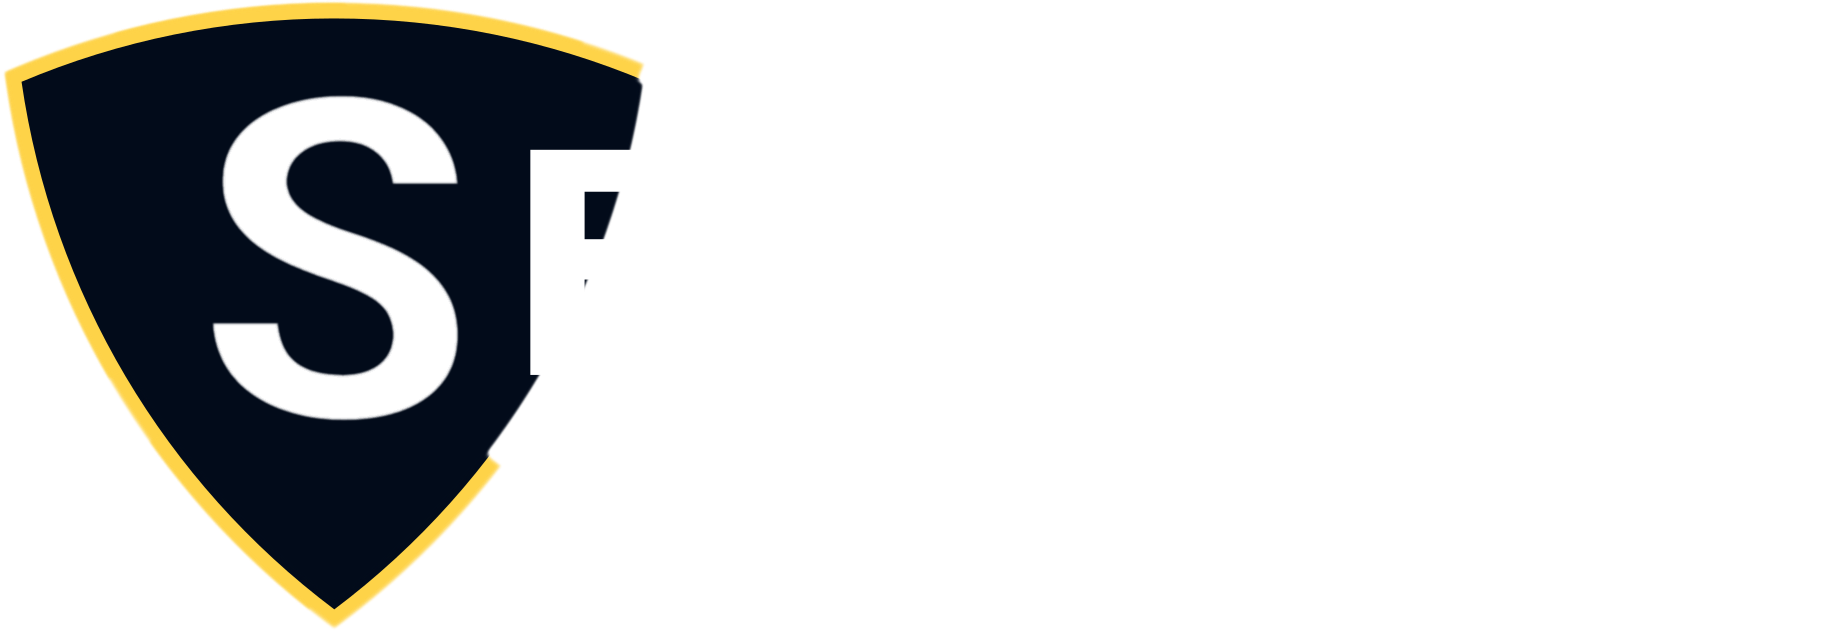 Logotyp Securivy